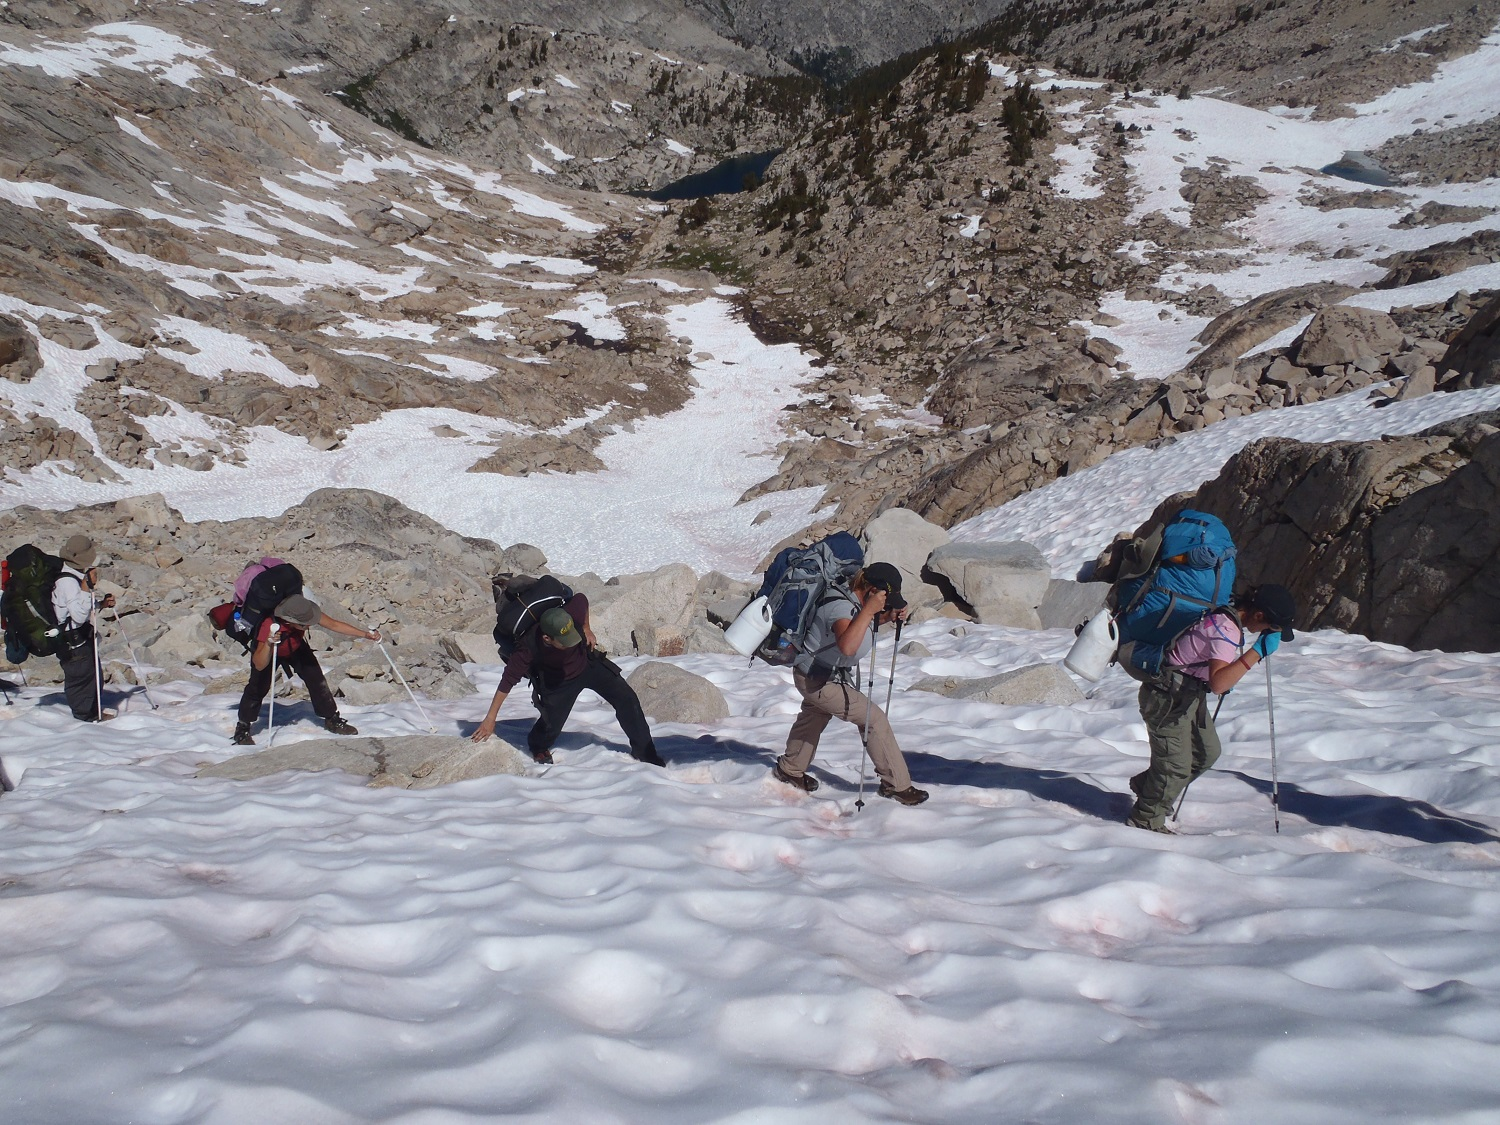 2011 - Trans-Sierra Xtreme Challenge, Colby Pass ascent